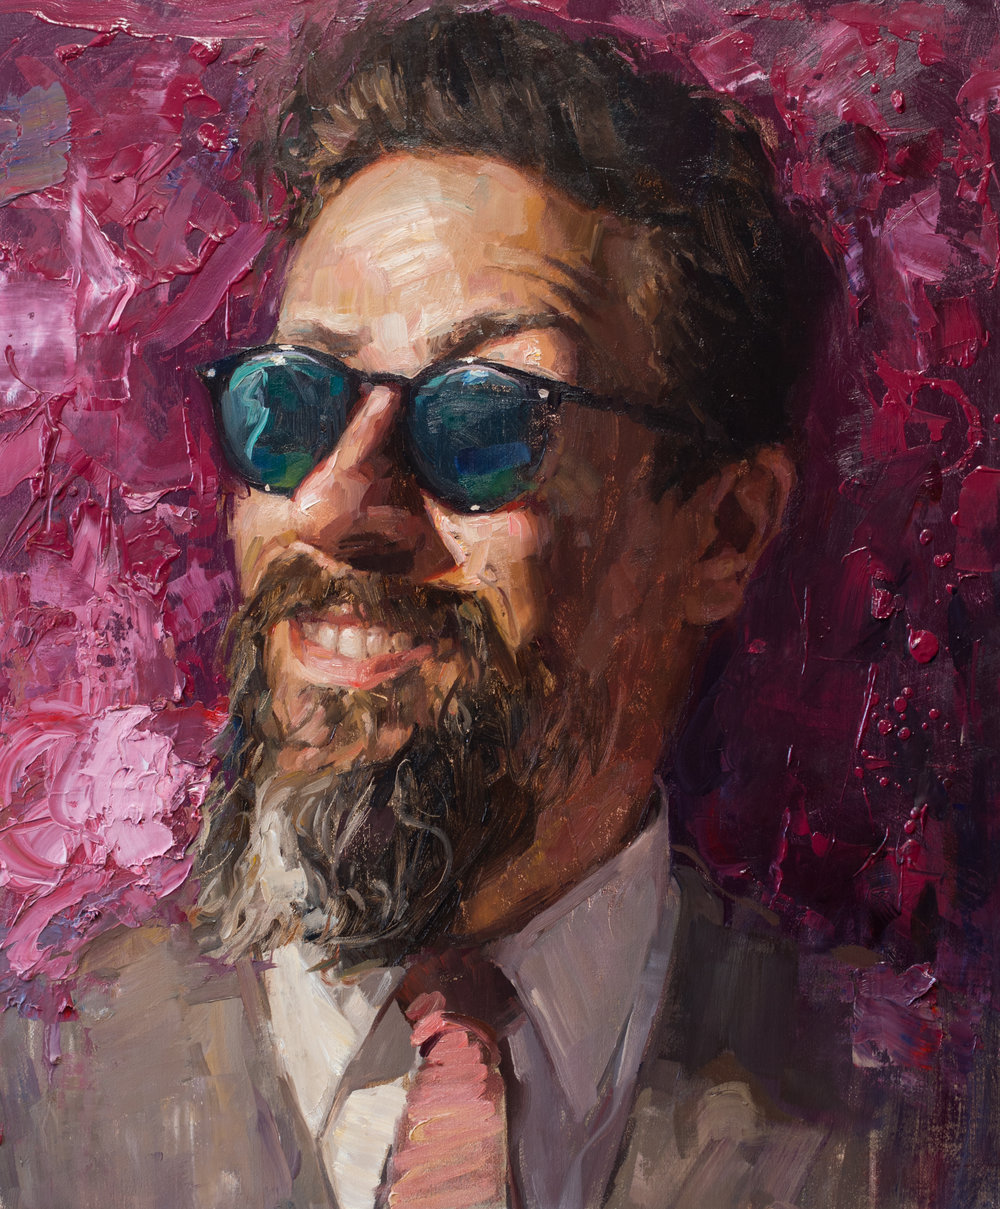 The Sky is Falling  - The Sky is Falling 24x20 inches oil on linen panelIn The Sky is Falling, Talbert portrays a friend with an inane grin on his face, his eyes hidden behind dark shades, with a bright magenta impasto background fiercely elbowing its way into the scene. The alternative and lengthier title given to this painting—Front Row Seat to The End of the World—alludes to current world events and is a commentary on how most people seem to prefer to remain oblivious and passively comatose towards the corrosion of shared ethical and moral values happening all around us.